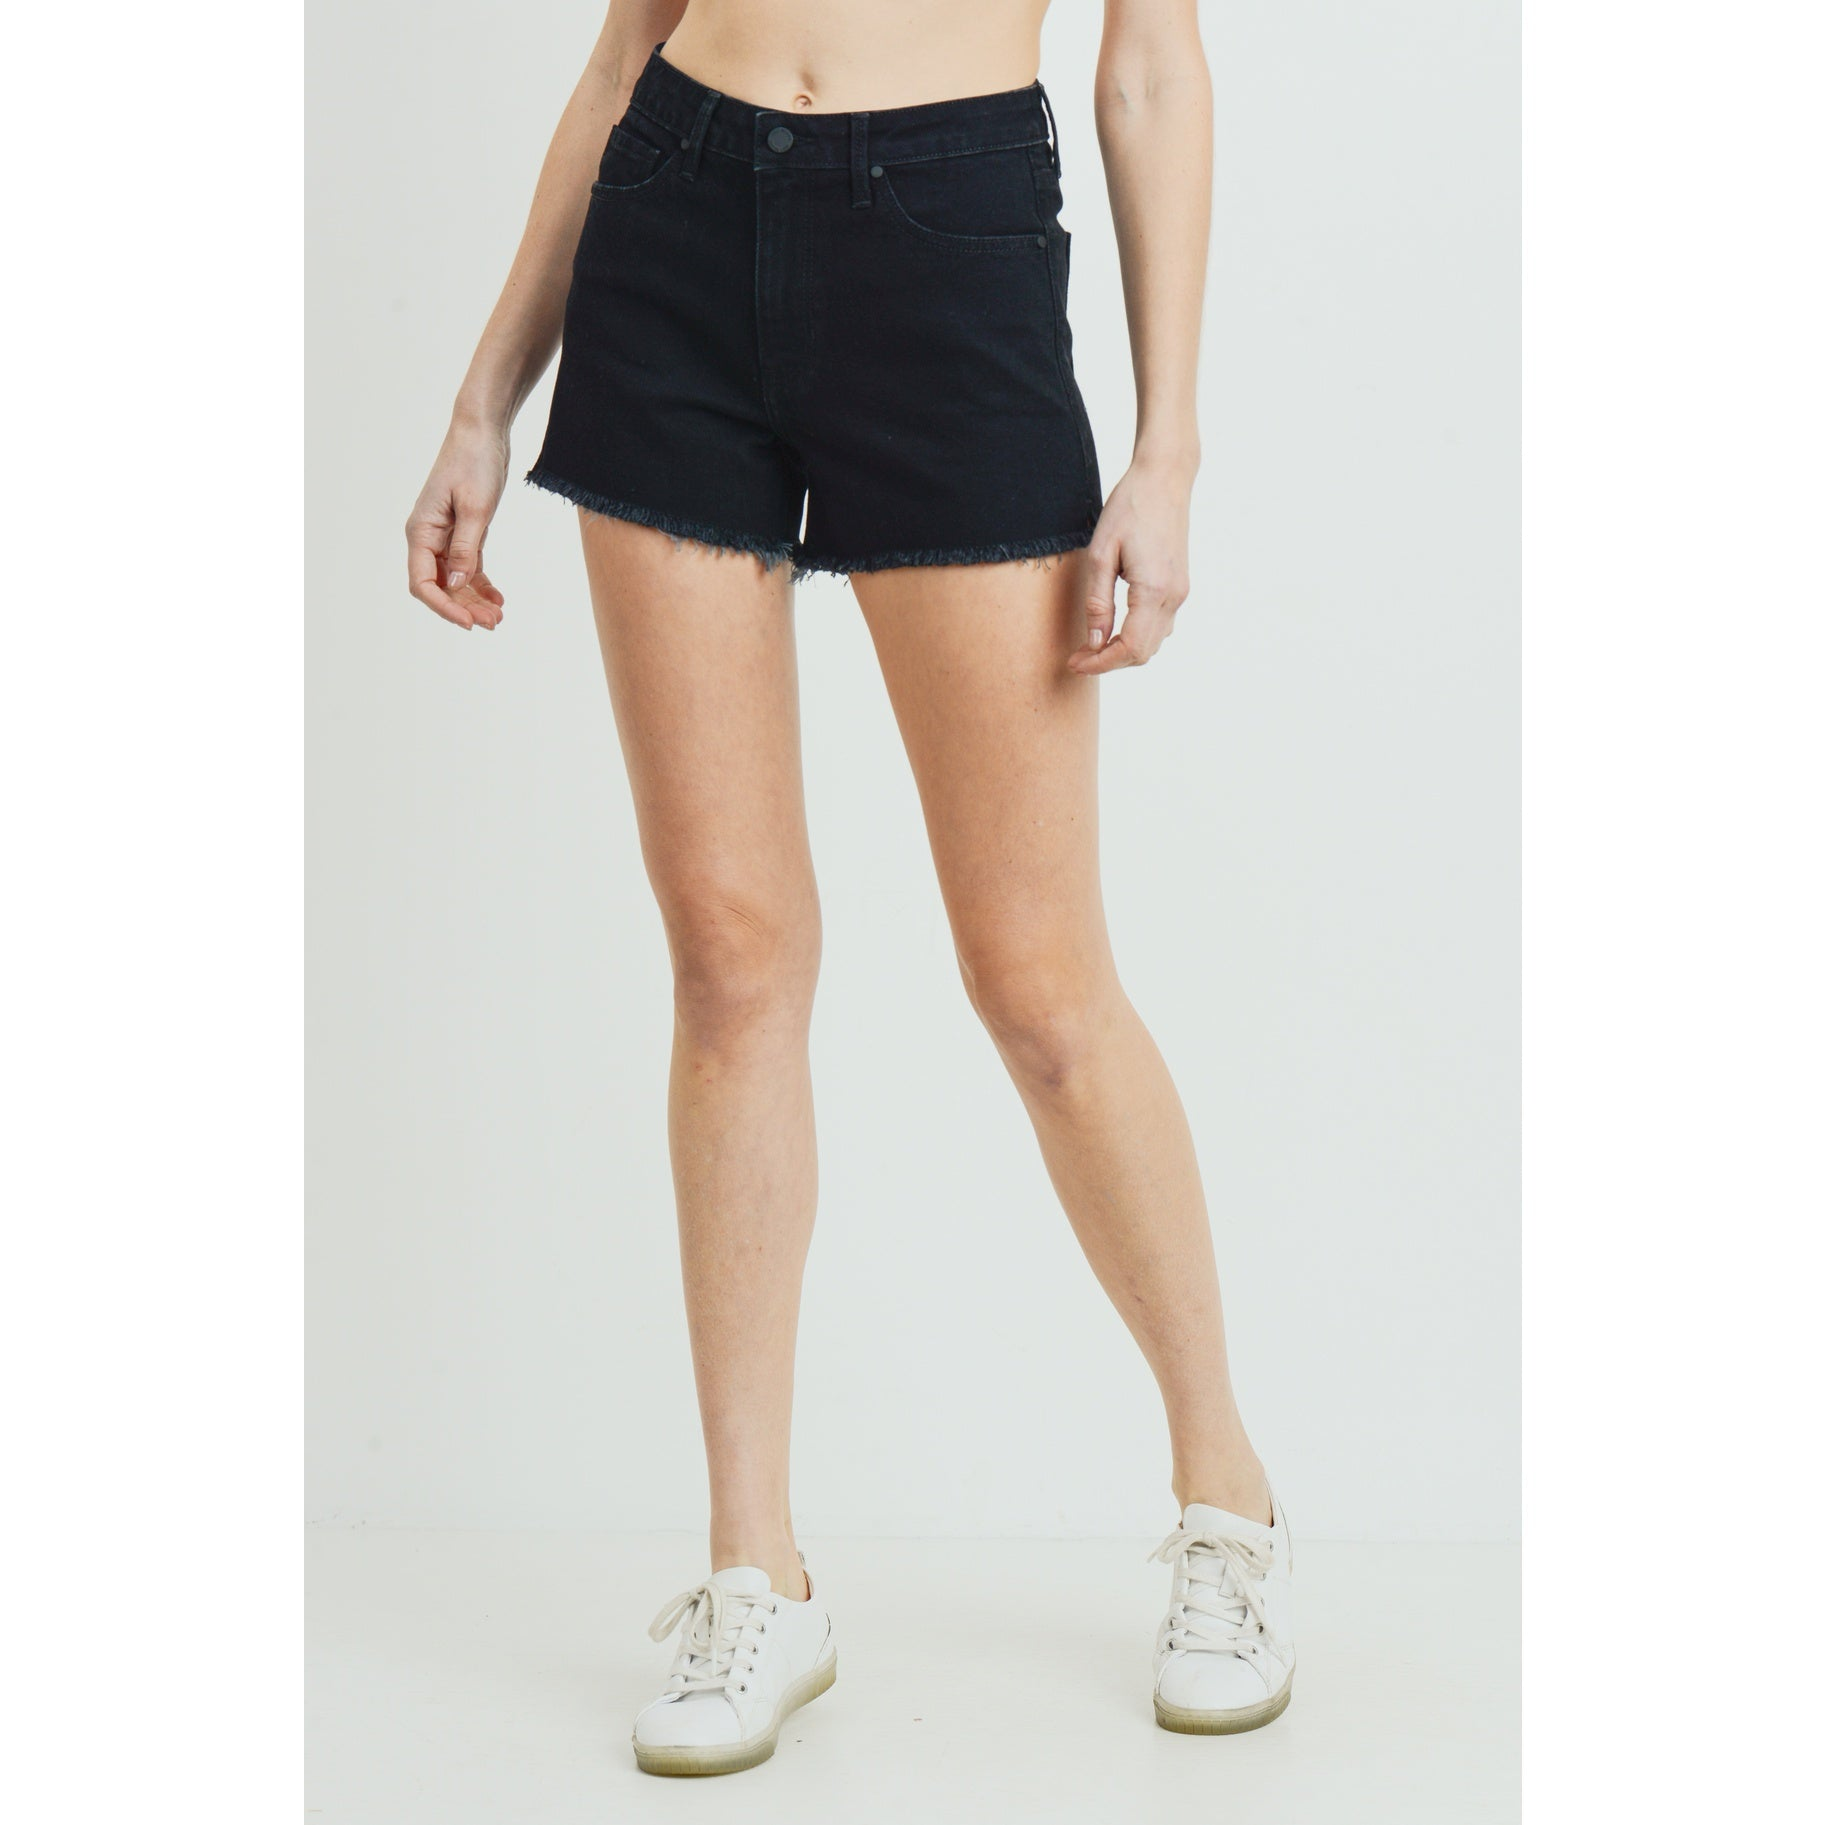 The Weekend Black Jean Shorts by Just Black Denim